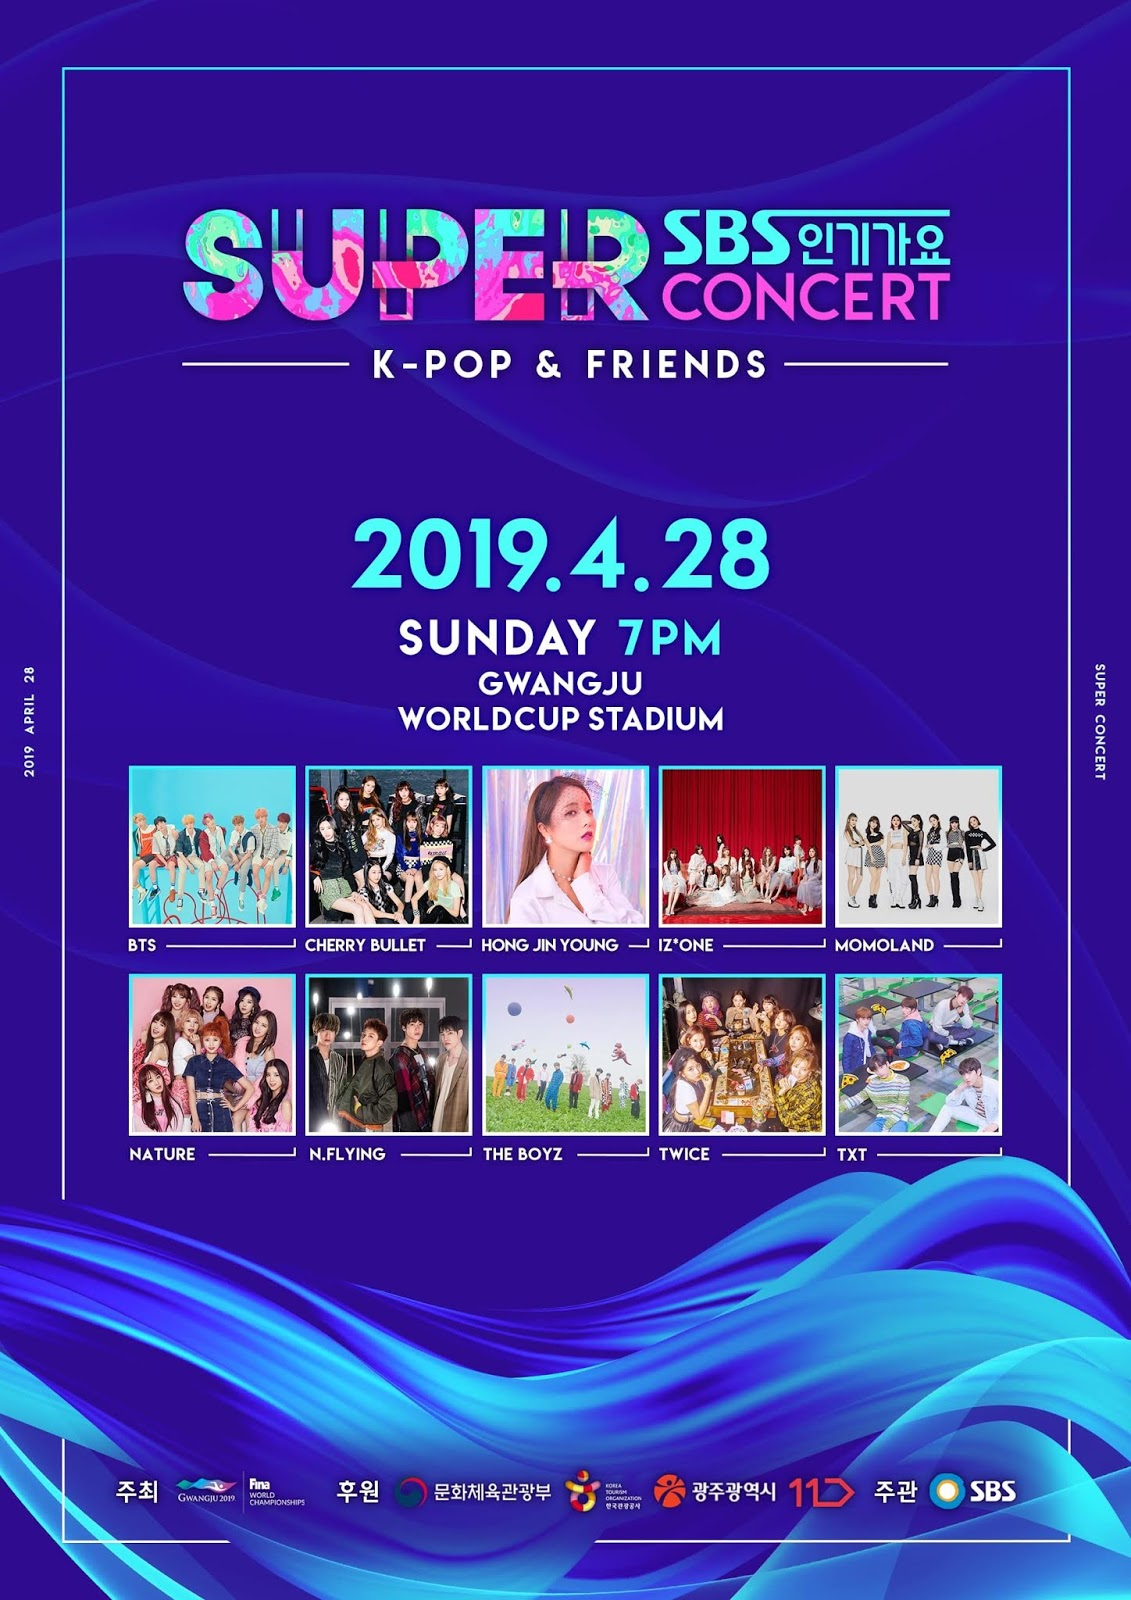 Gokpop Exclusive K News In Malaysia Singapore Get Free Tix To